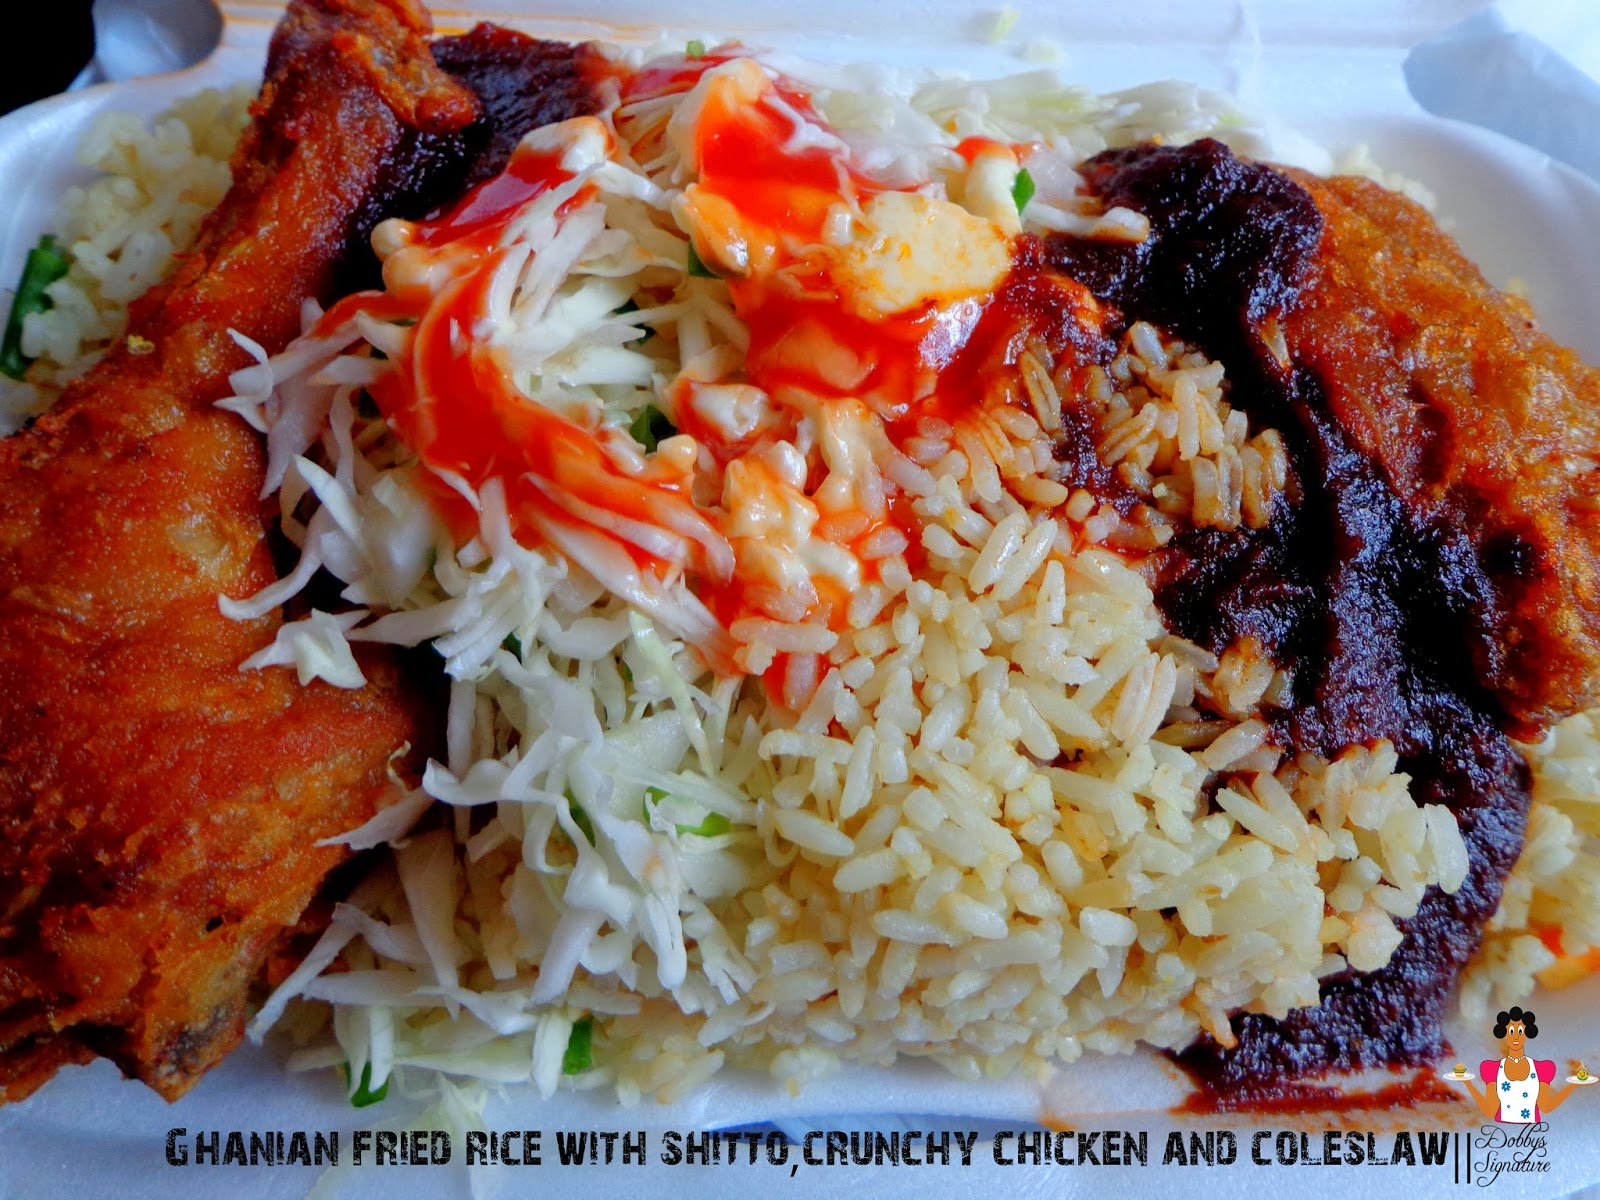 Dobbys signature nigerian food blog i nigerian food recipes i check check fried rice with shitto crunchy chicken coleslaw ccuart Gallery